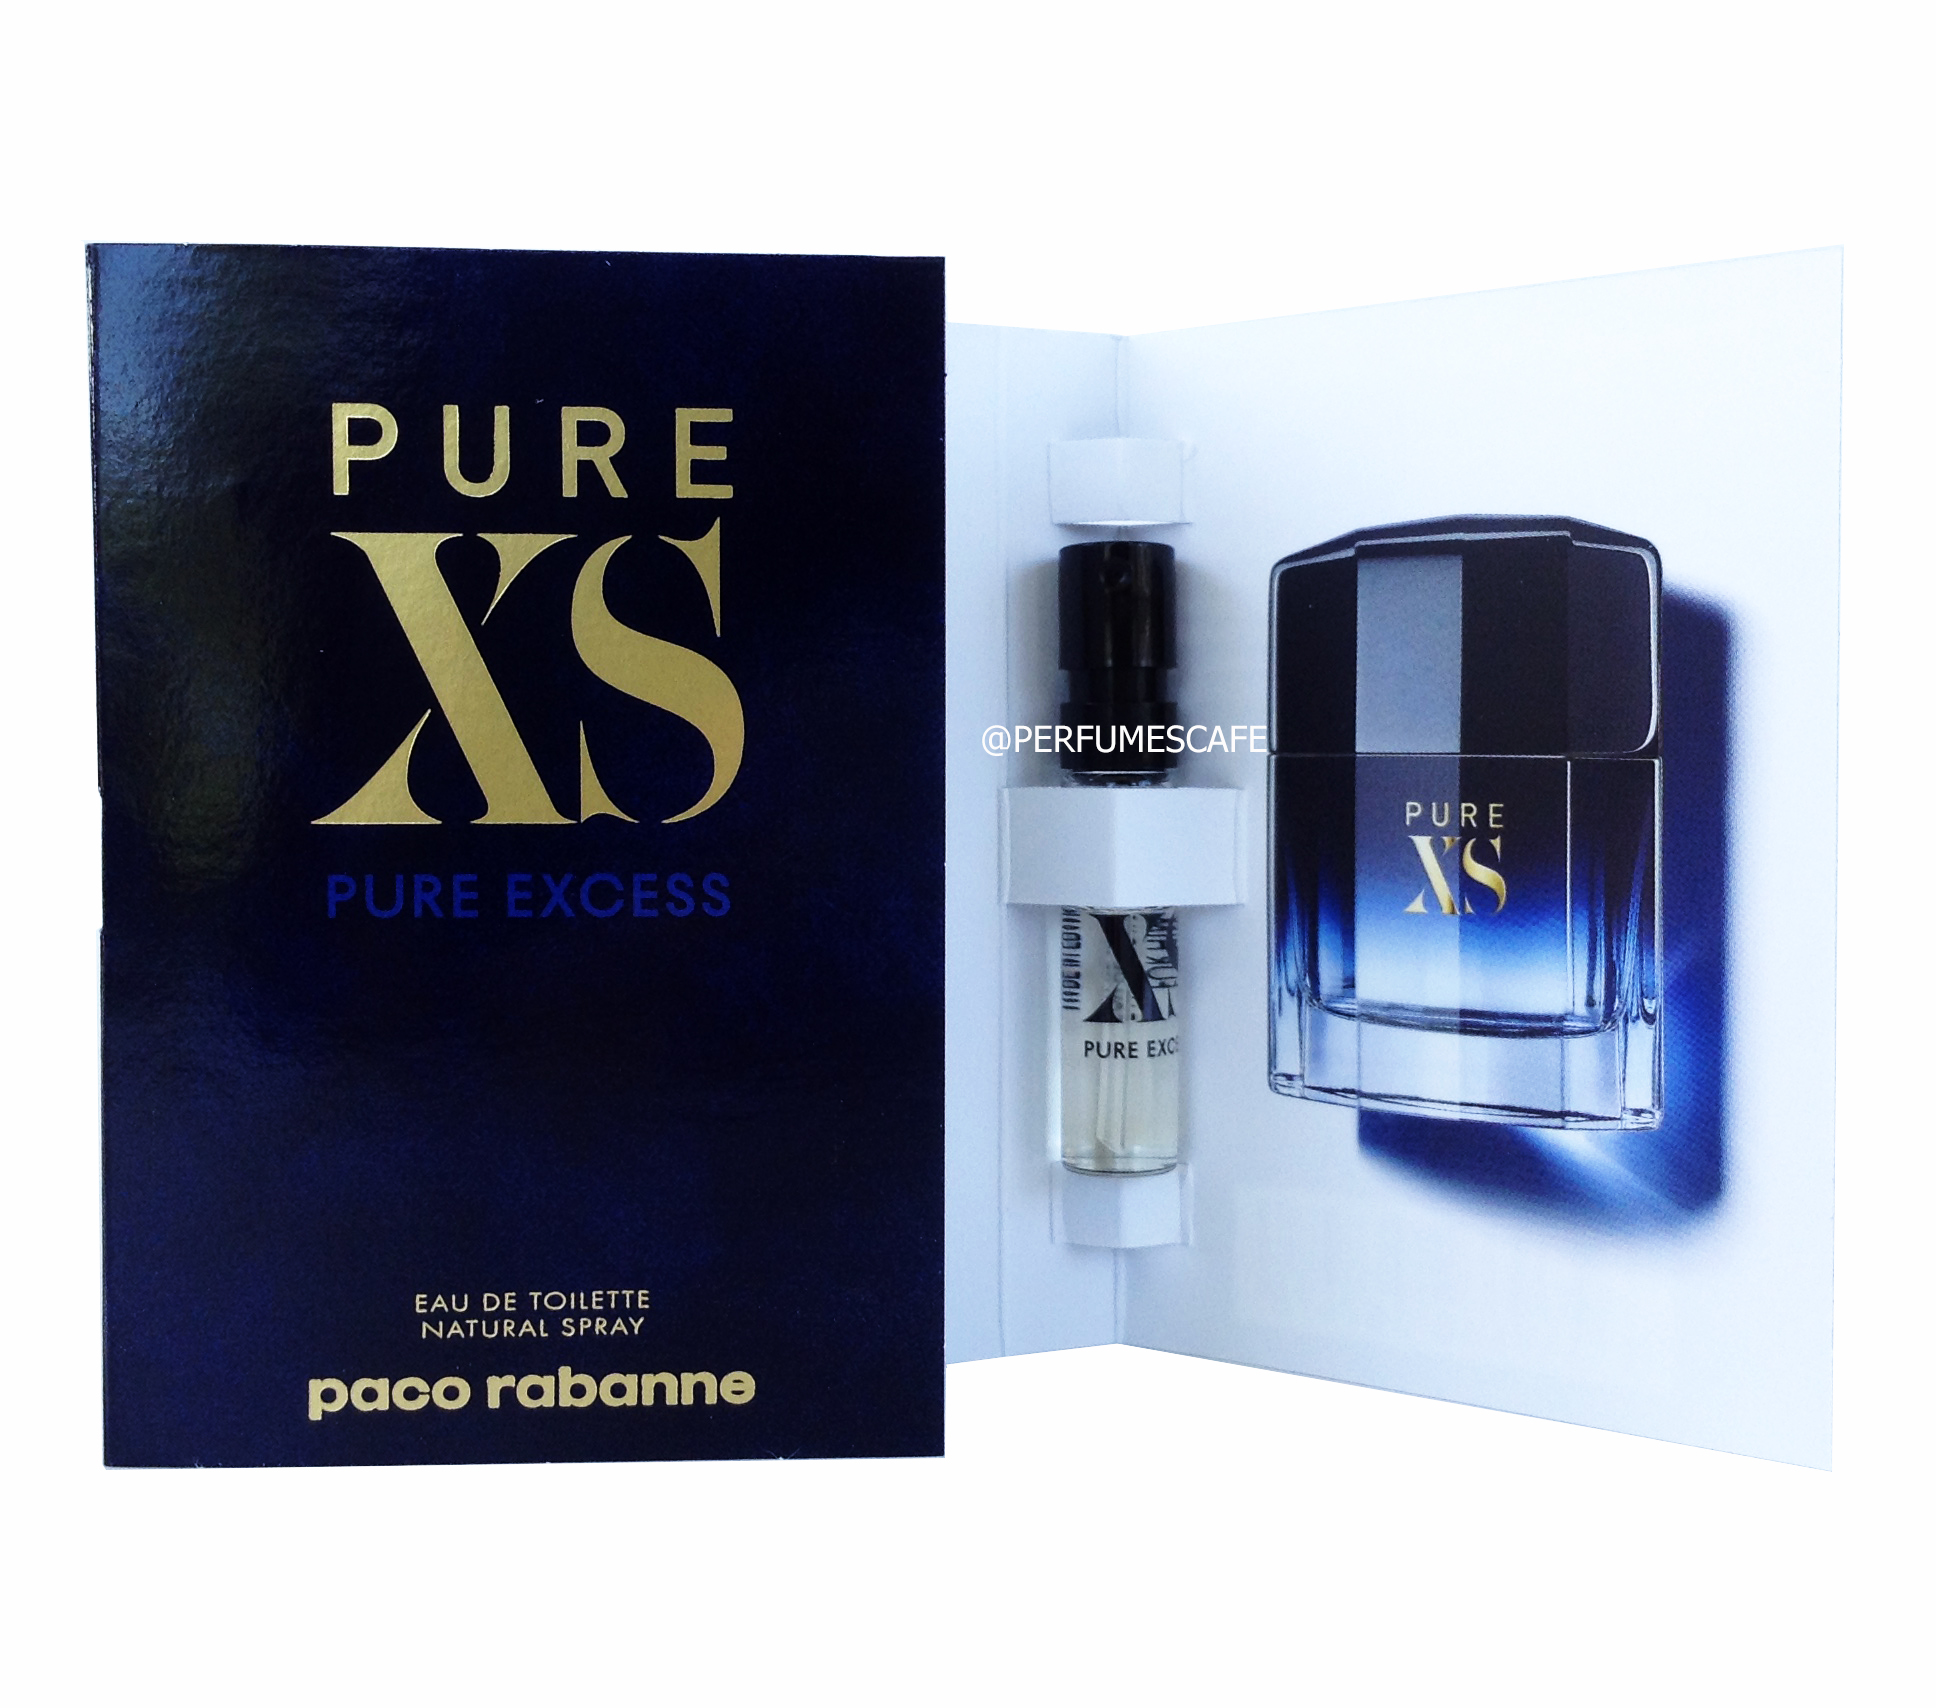 น้ำหอม Paco Rabanne Pure XS Eau de Toilette for him ขนาด 1.5ml